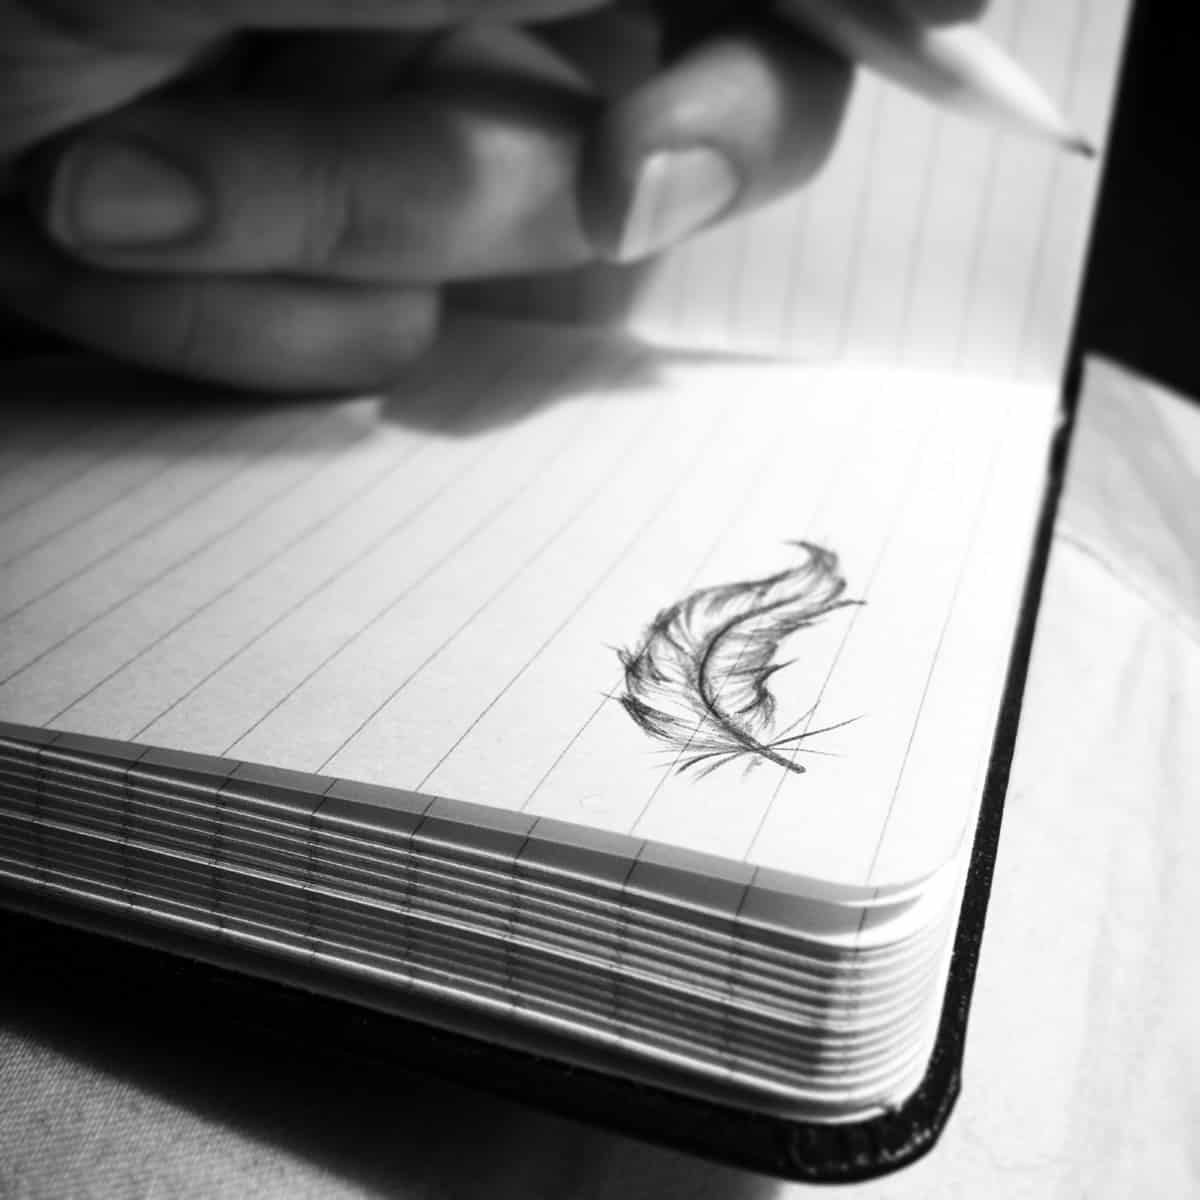 A photo of a feather doodled on the top right-hand corner of a notebook.